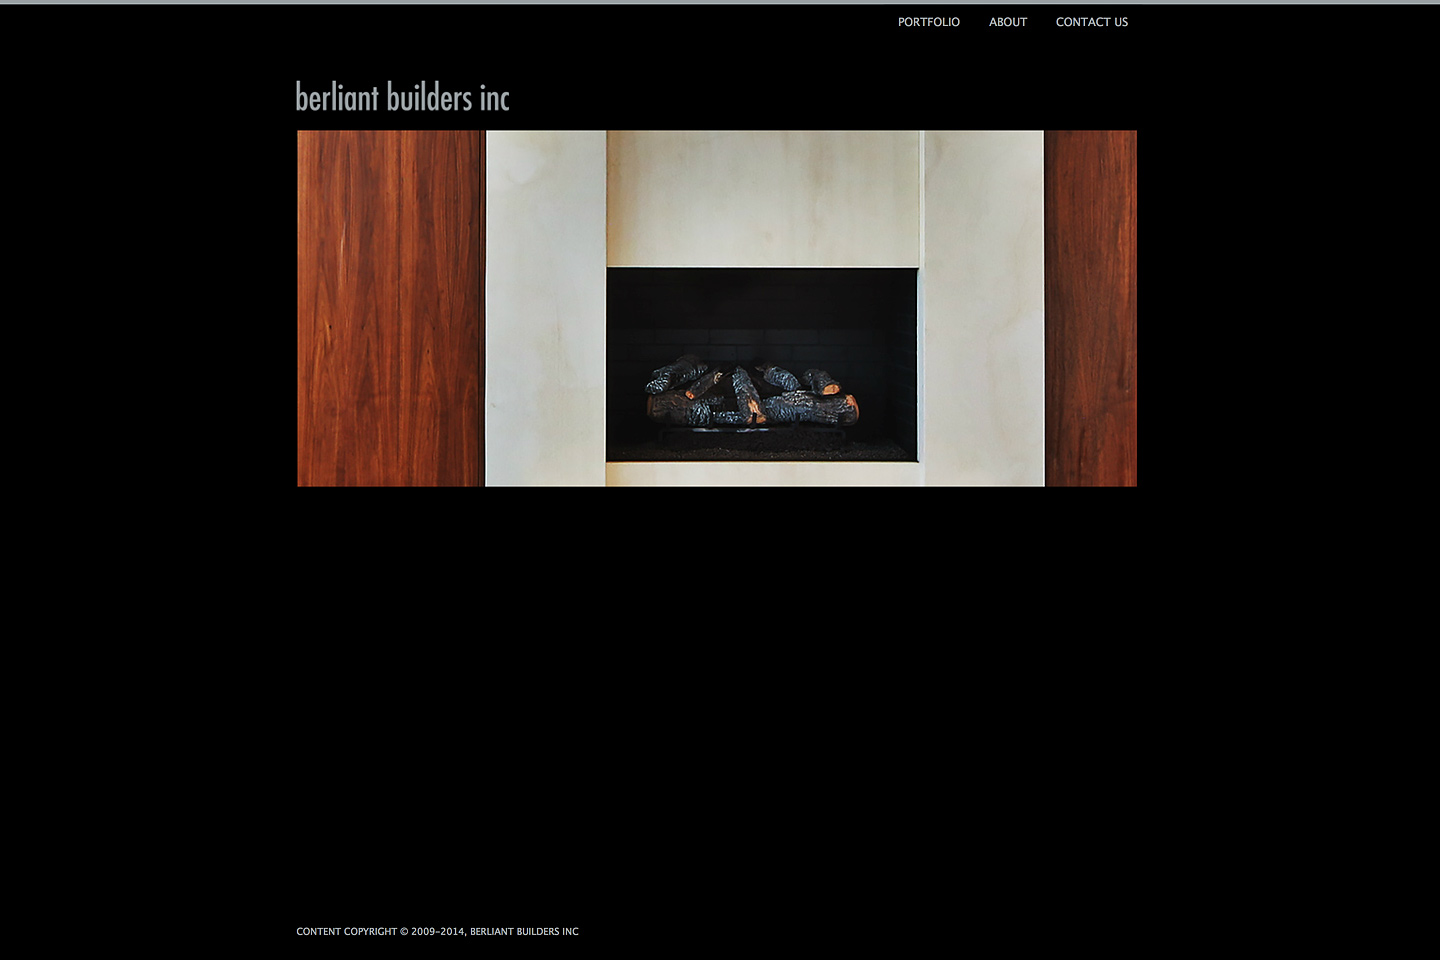 a screen capture of the berliant builders home page which features high resolution photos of great architectural details